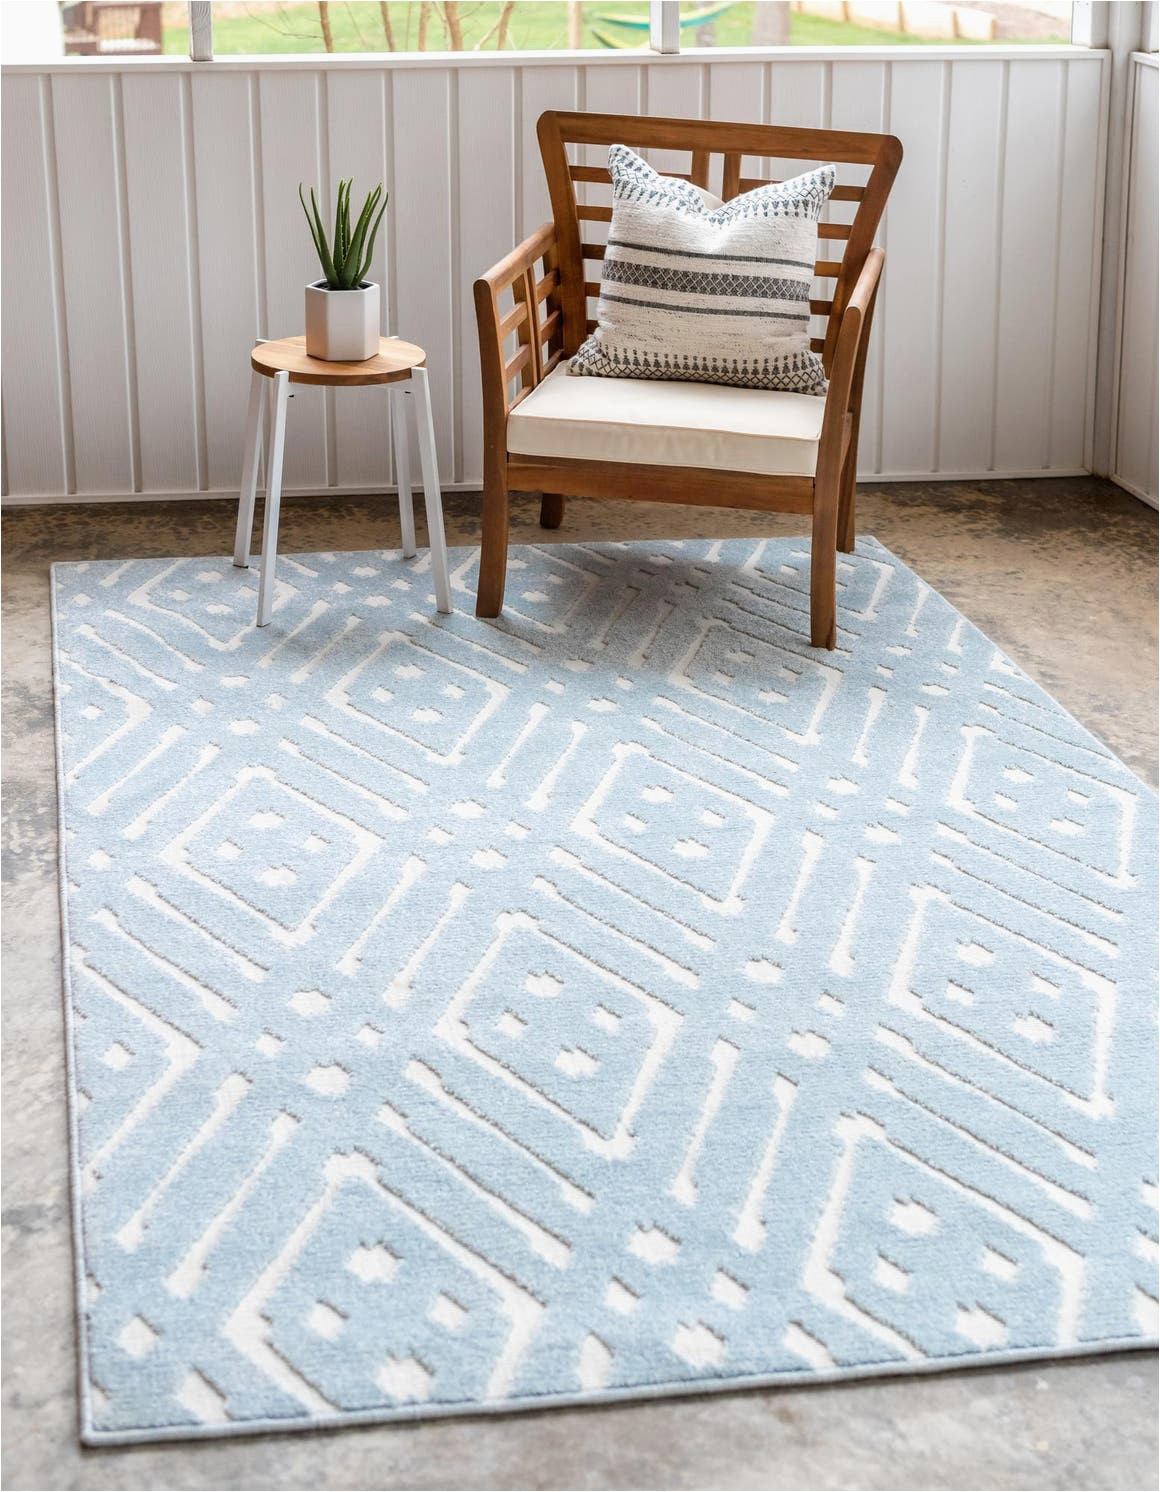 light blue 4x6 sabrina soto outdoor area rug